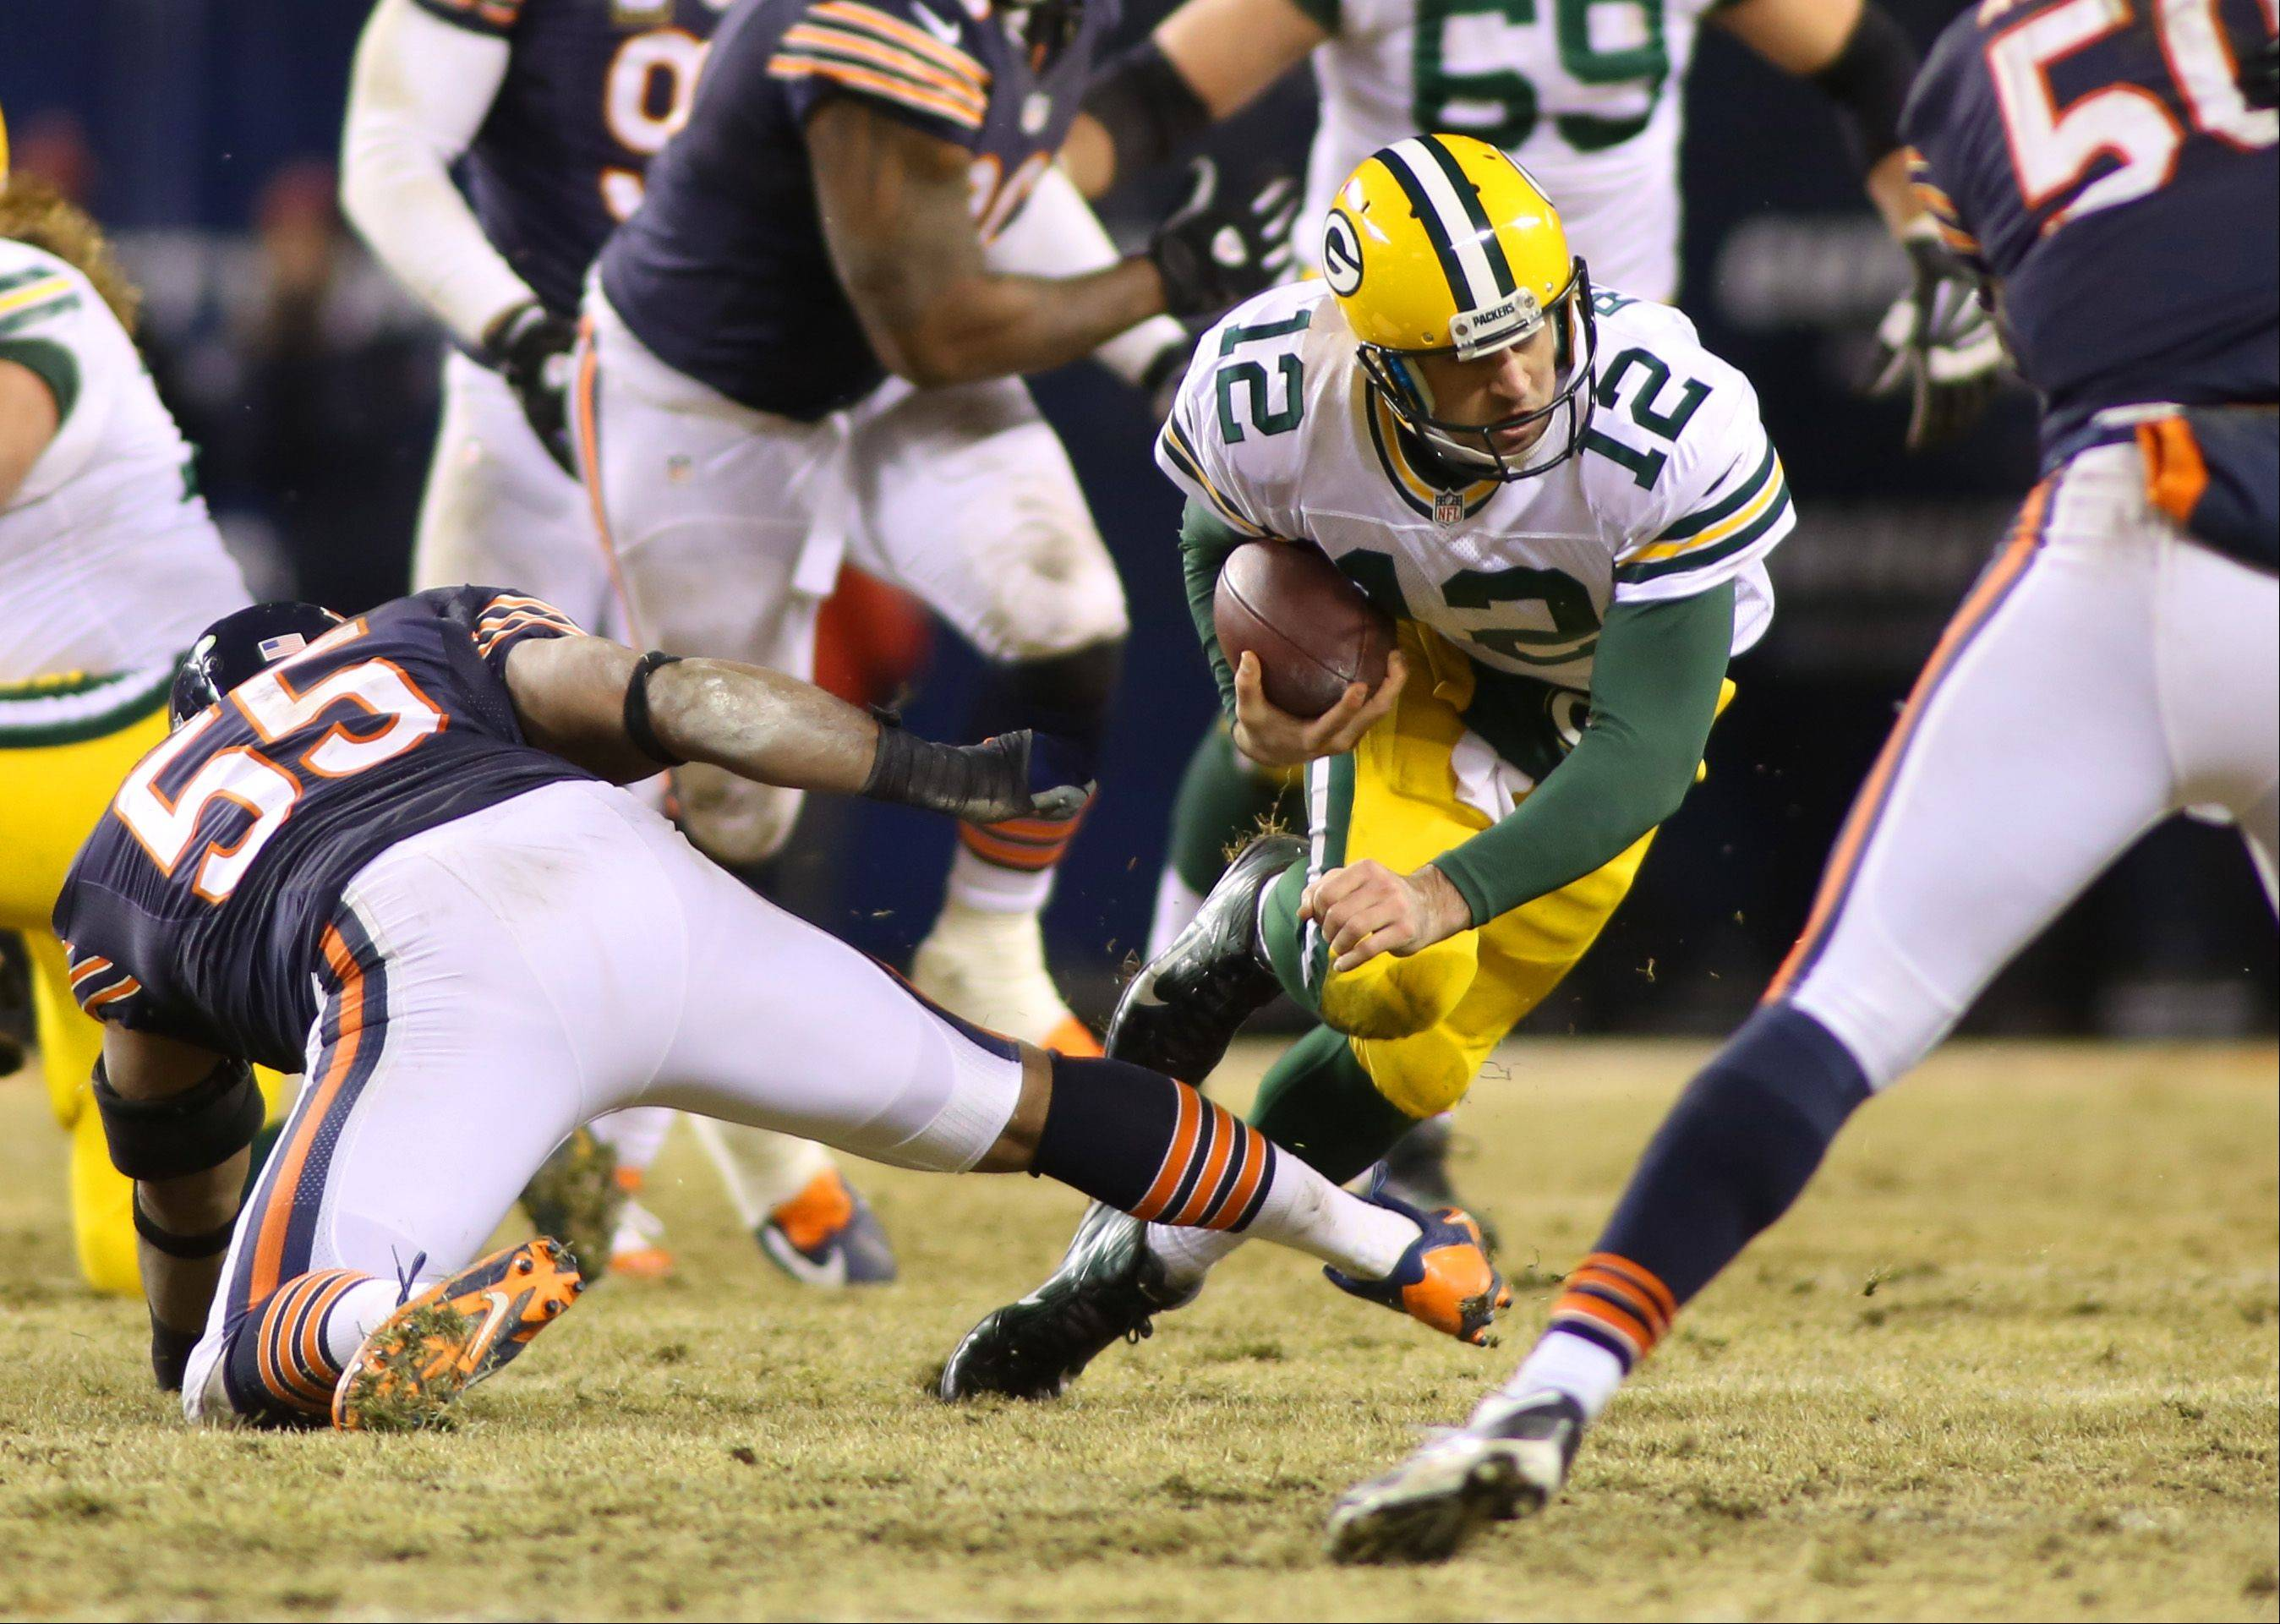 Aaron Rodgers runs for a first down during the second half.